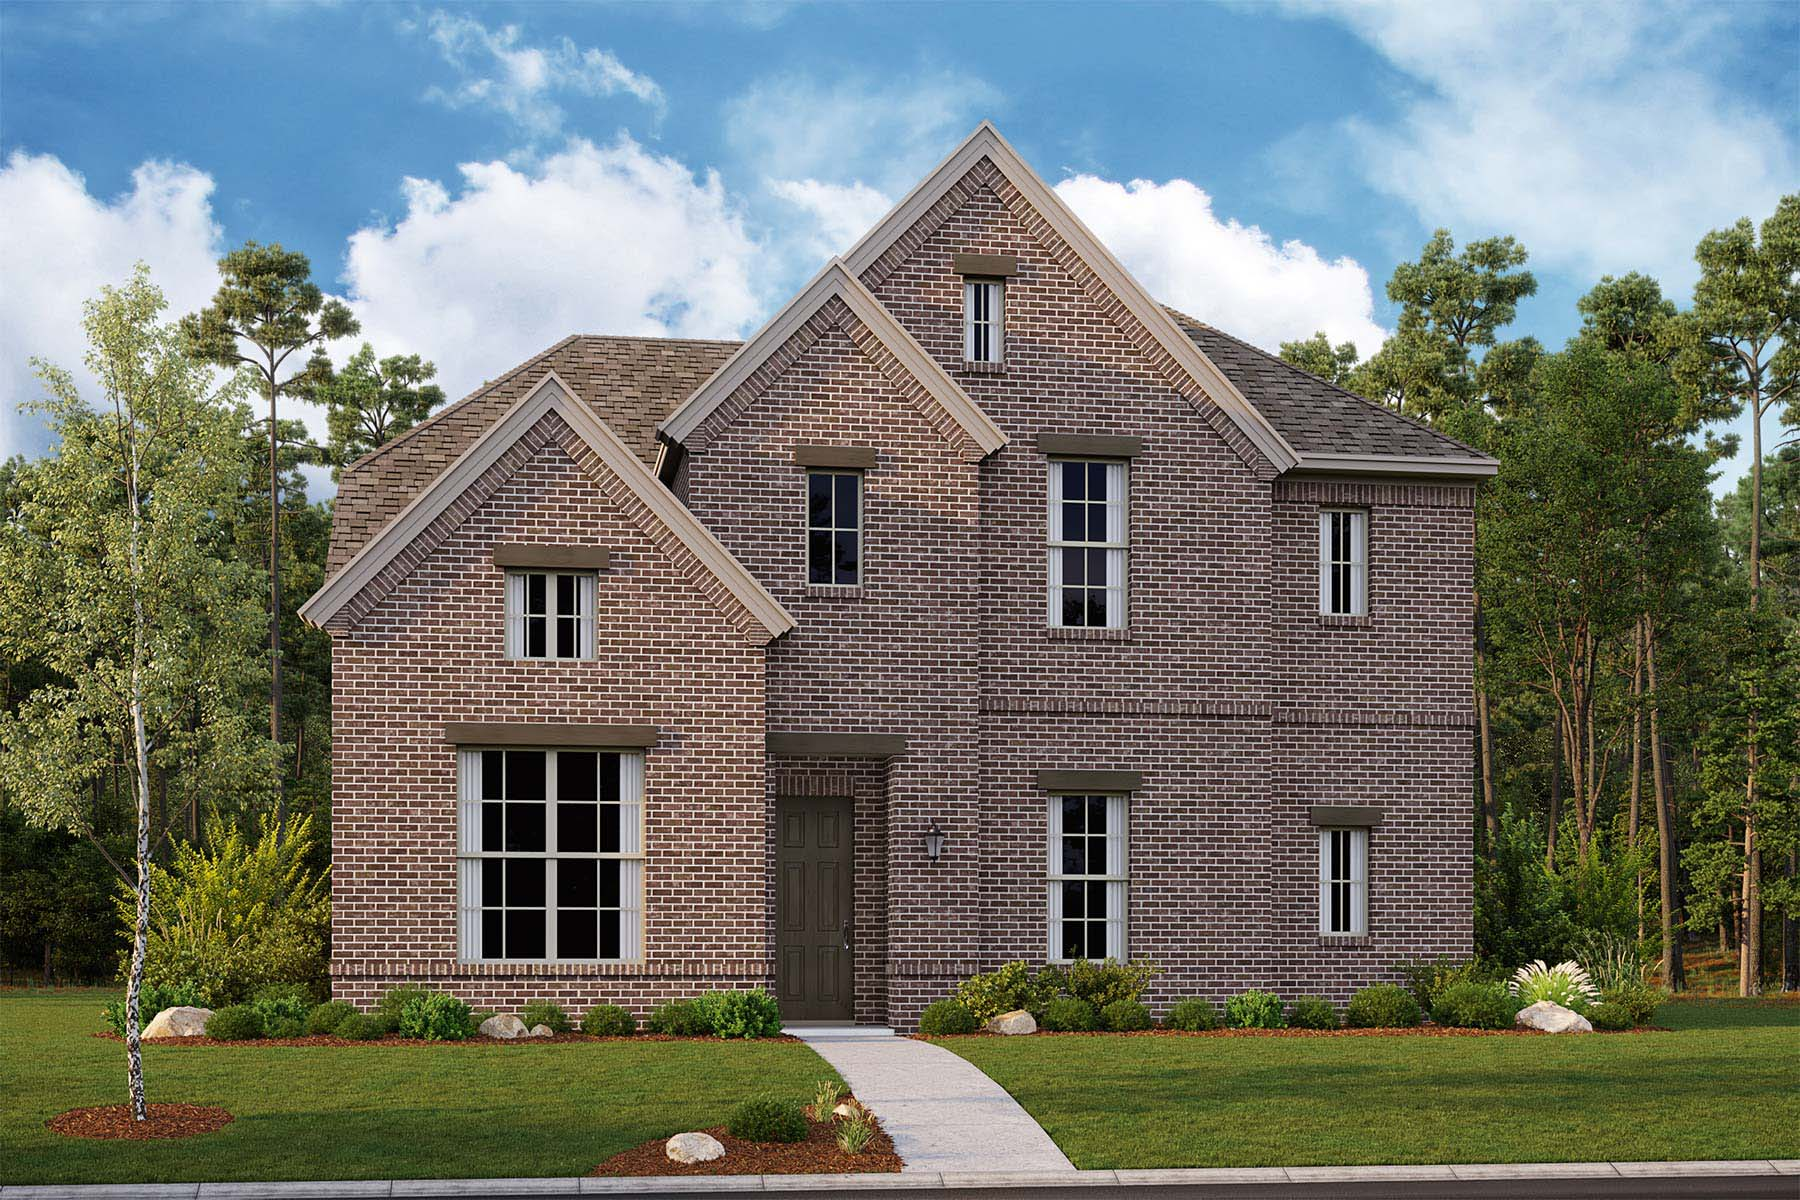 Vanderbuilt Plan Elevation Front at Kensington Place in Farmers Branch Texas by Mattamy Homes